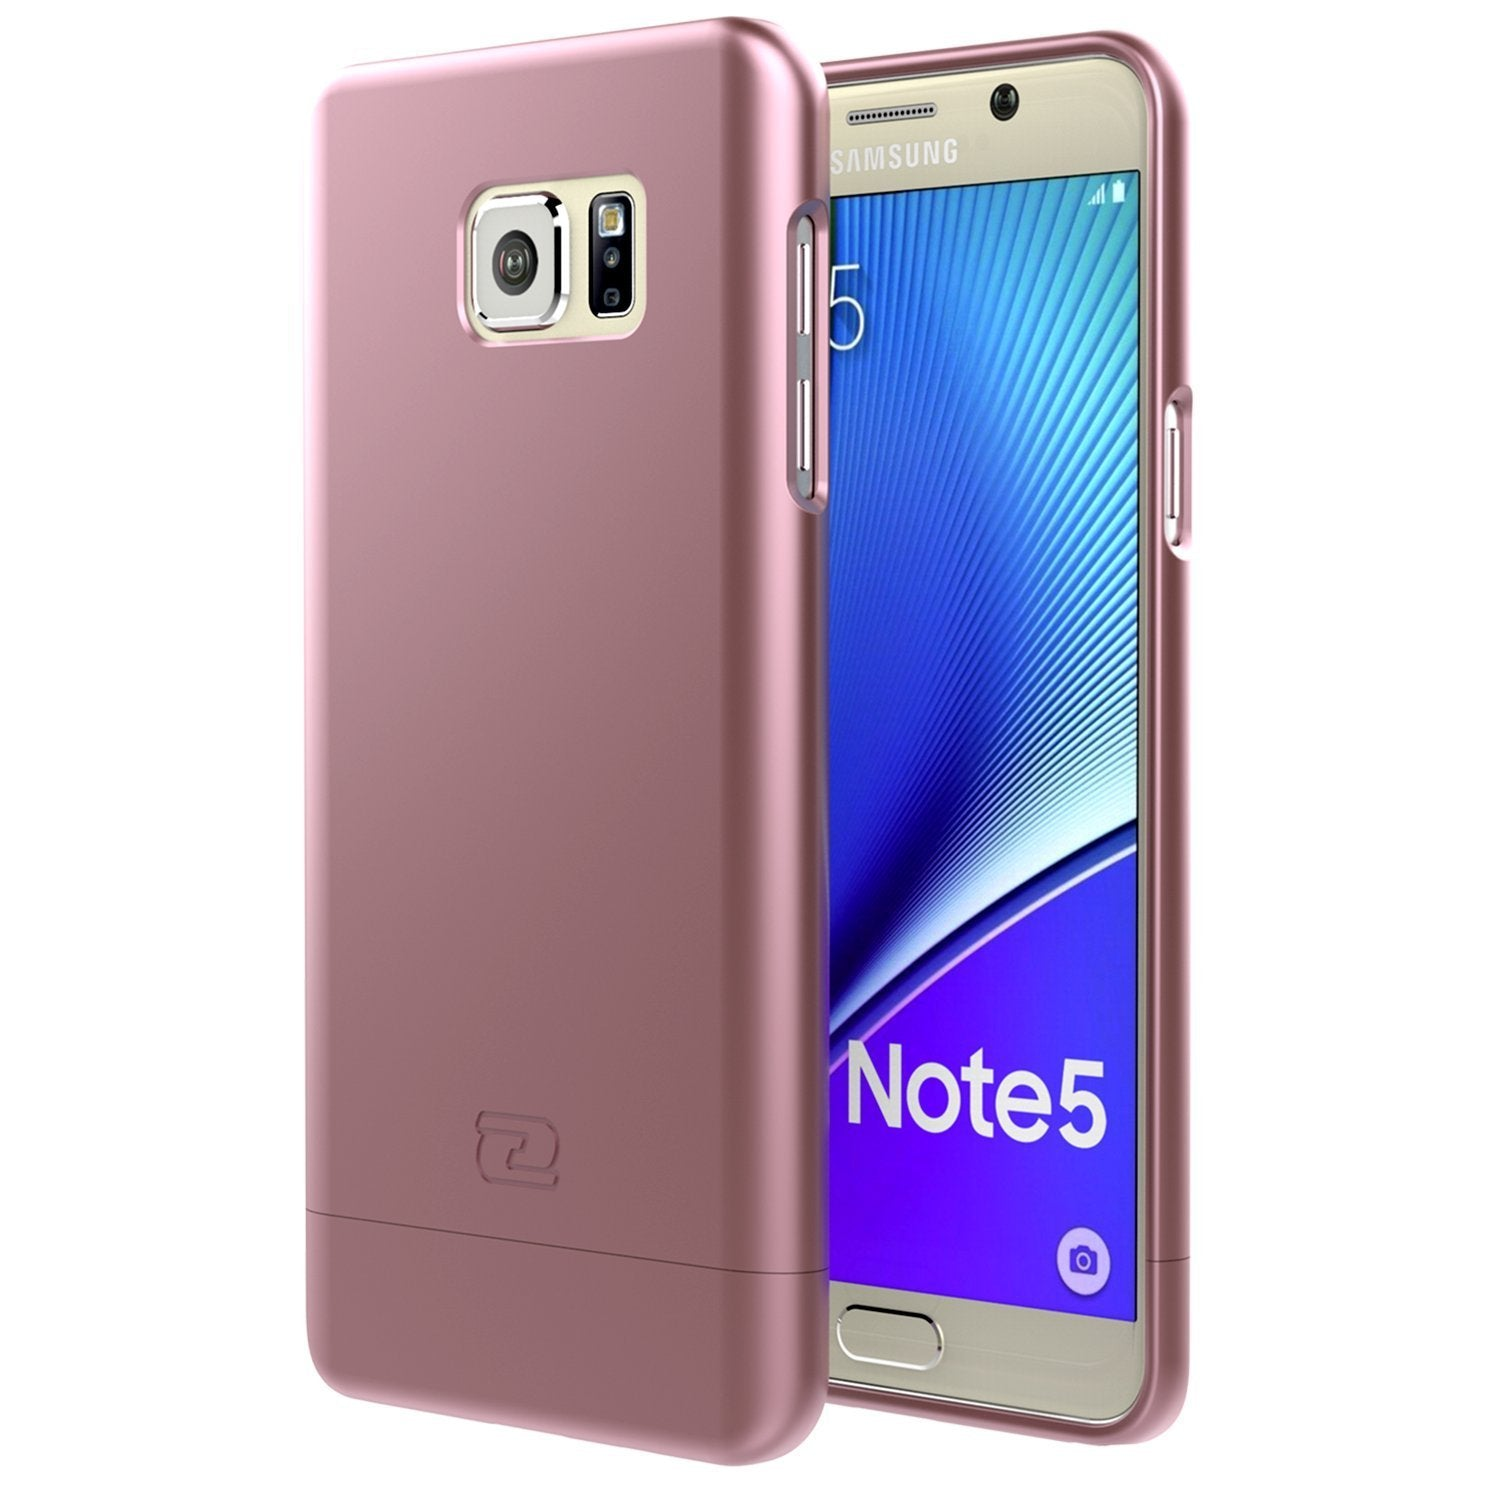 Samsung Galaxy NOTE 5 Case, Encased Ultra-thin SlimSHIELD Hybrid Shell4 Cool Colors Available)